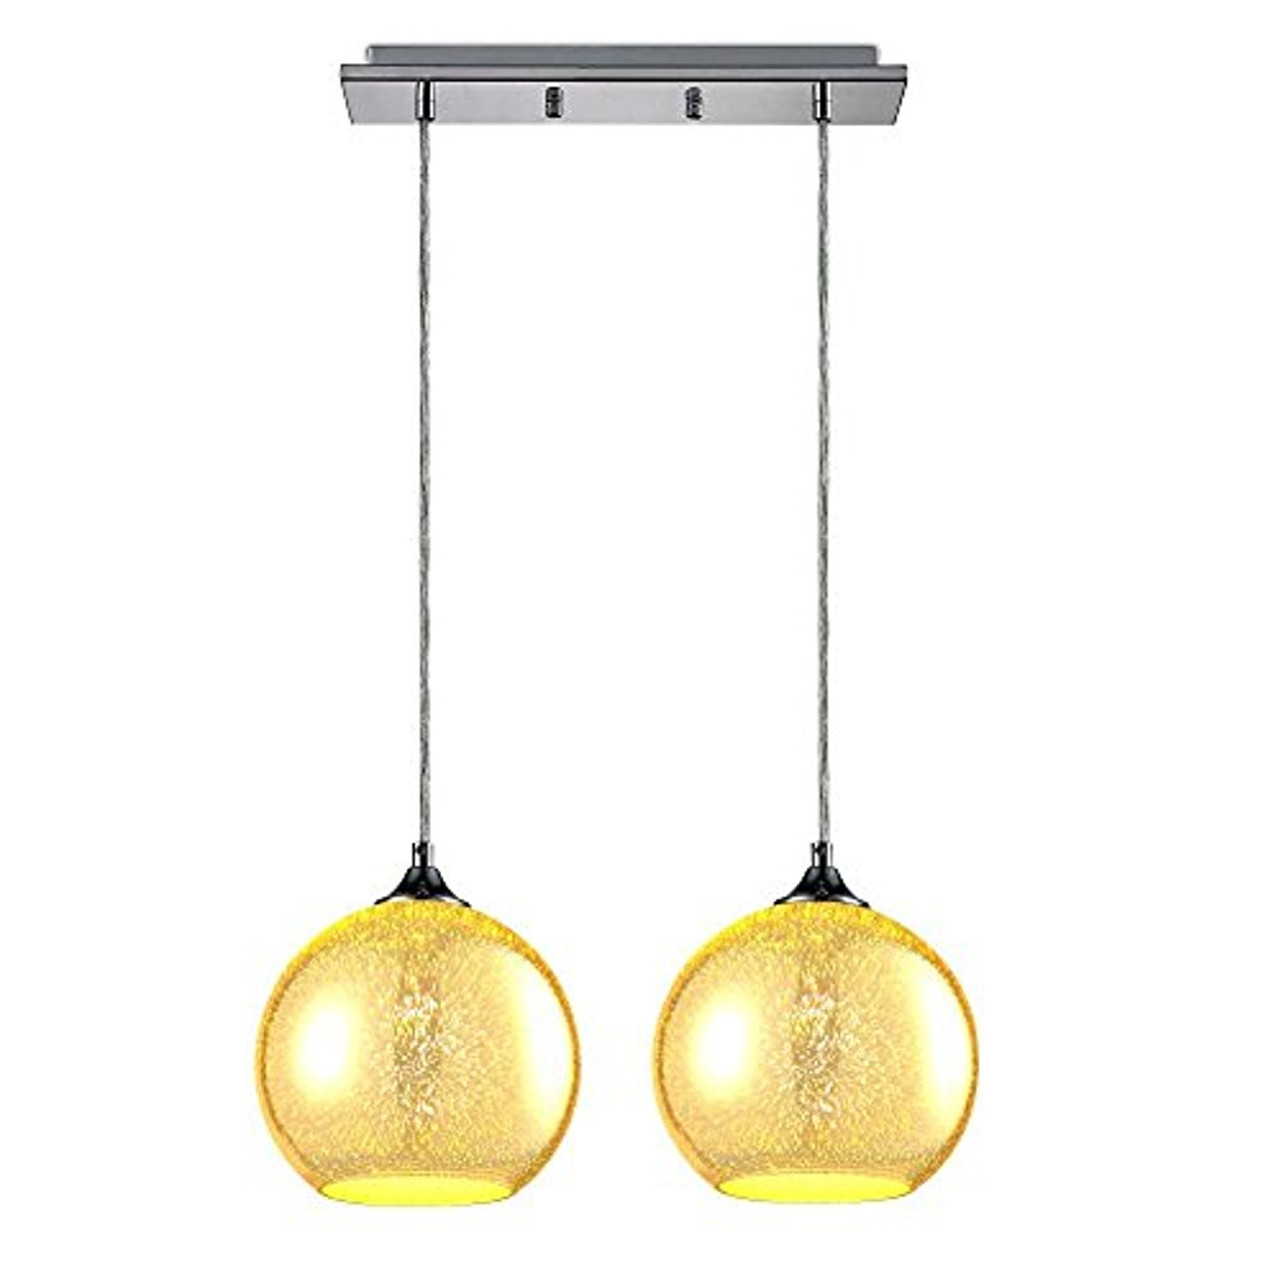 Hanging Lamp Serenelife Home Lighting Fixture Dual Pendant Hanging Lamp Ceiling Light With 2 7 87 Circular Sphere Shaped Dome Globes Sculpted Glass Accent